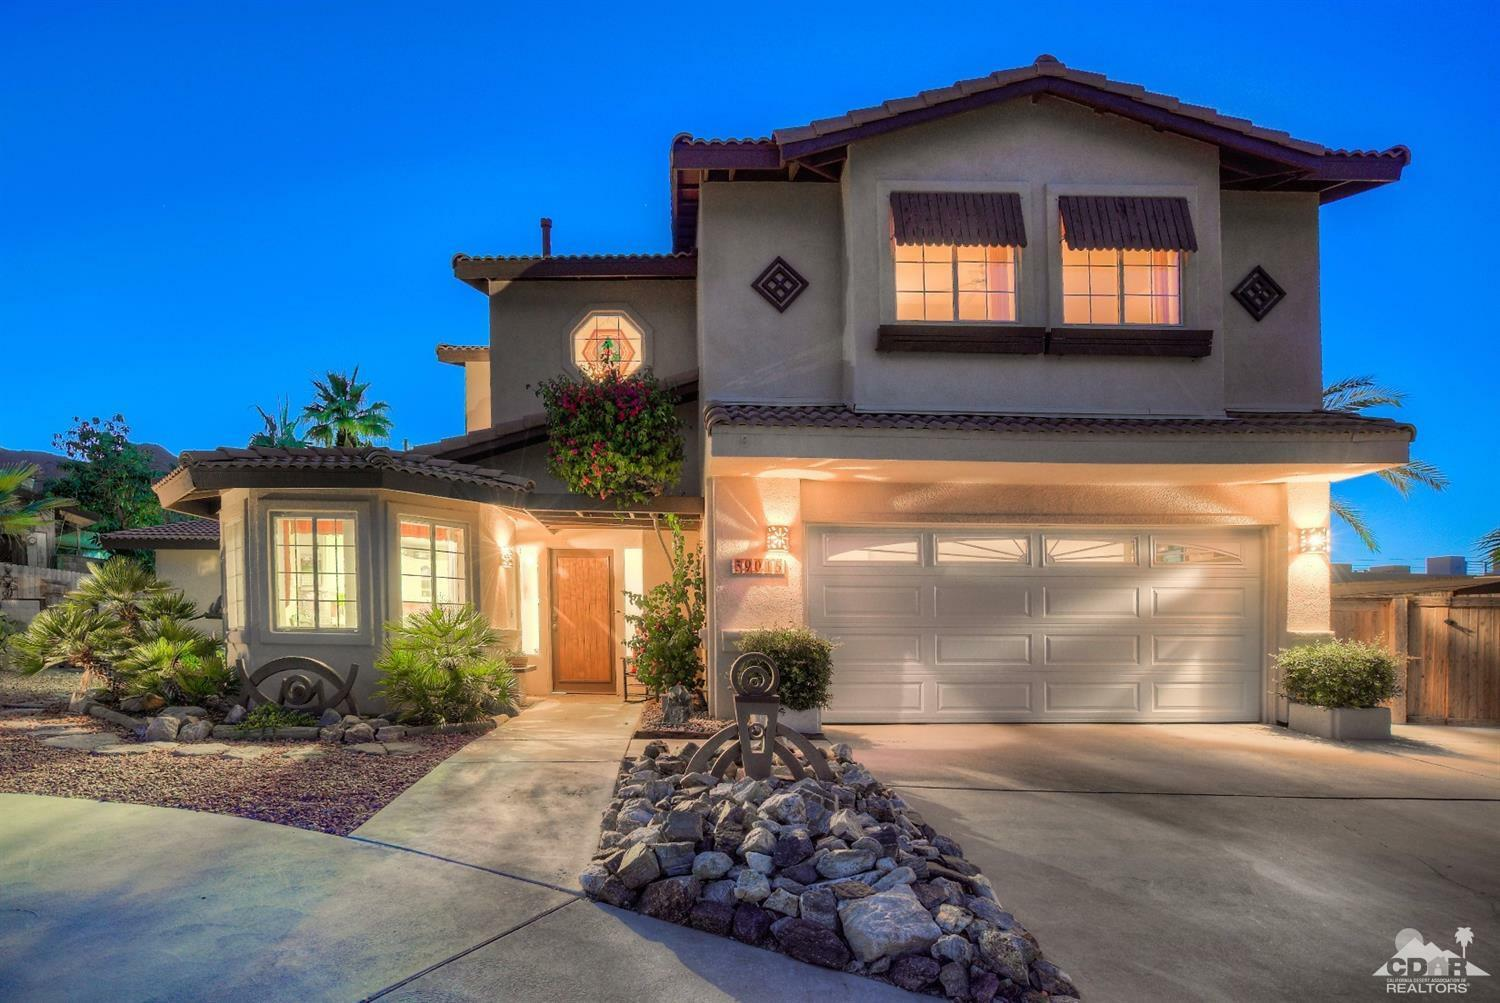 39015 Bel Air Drive, Cathedral City, CA - USA (photo 1)